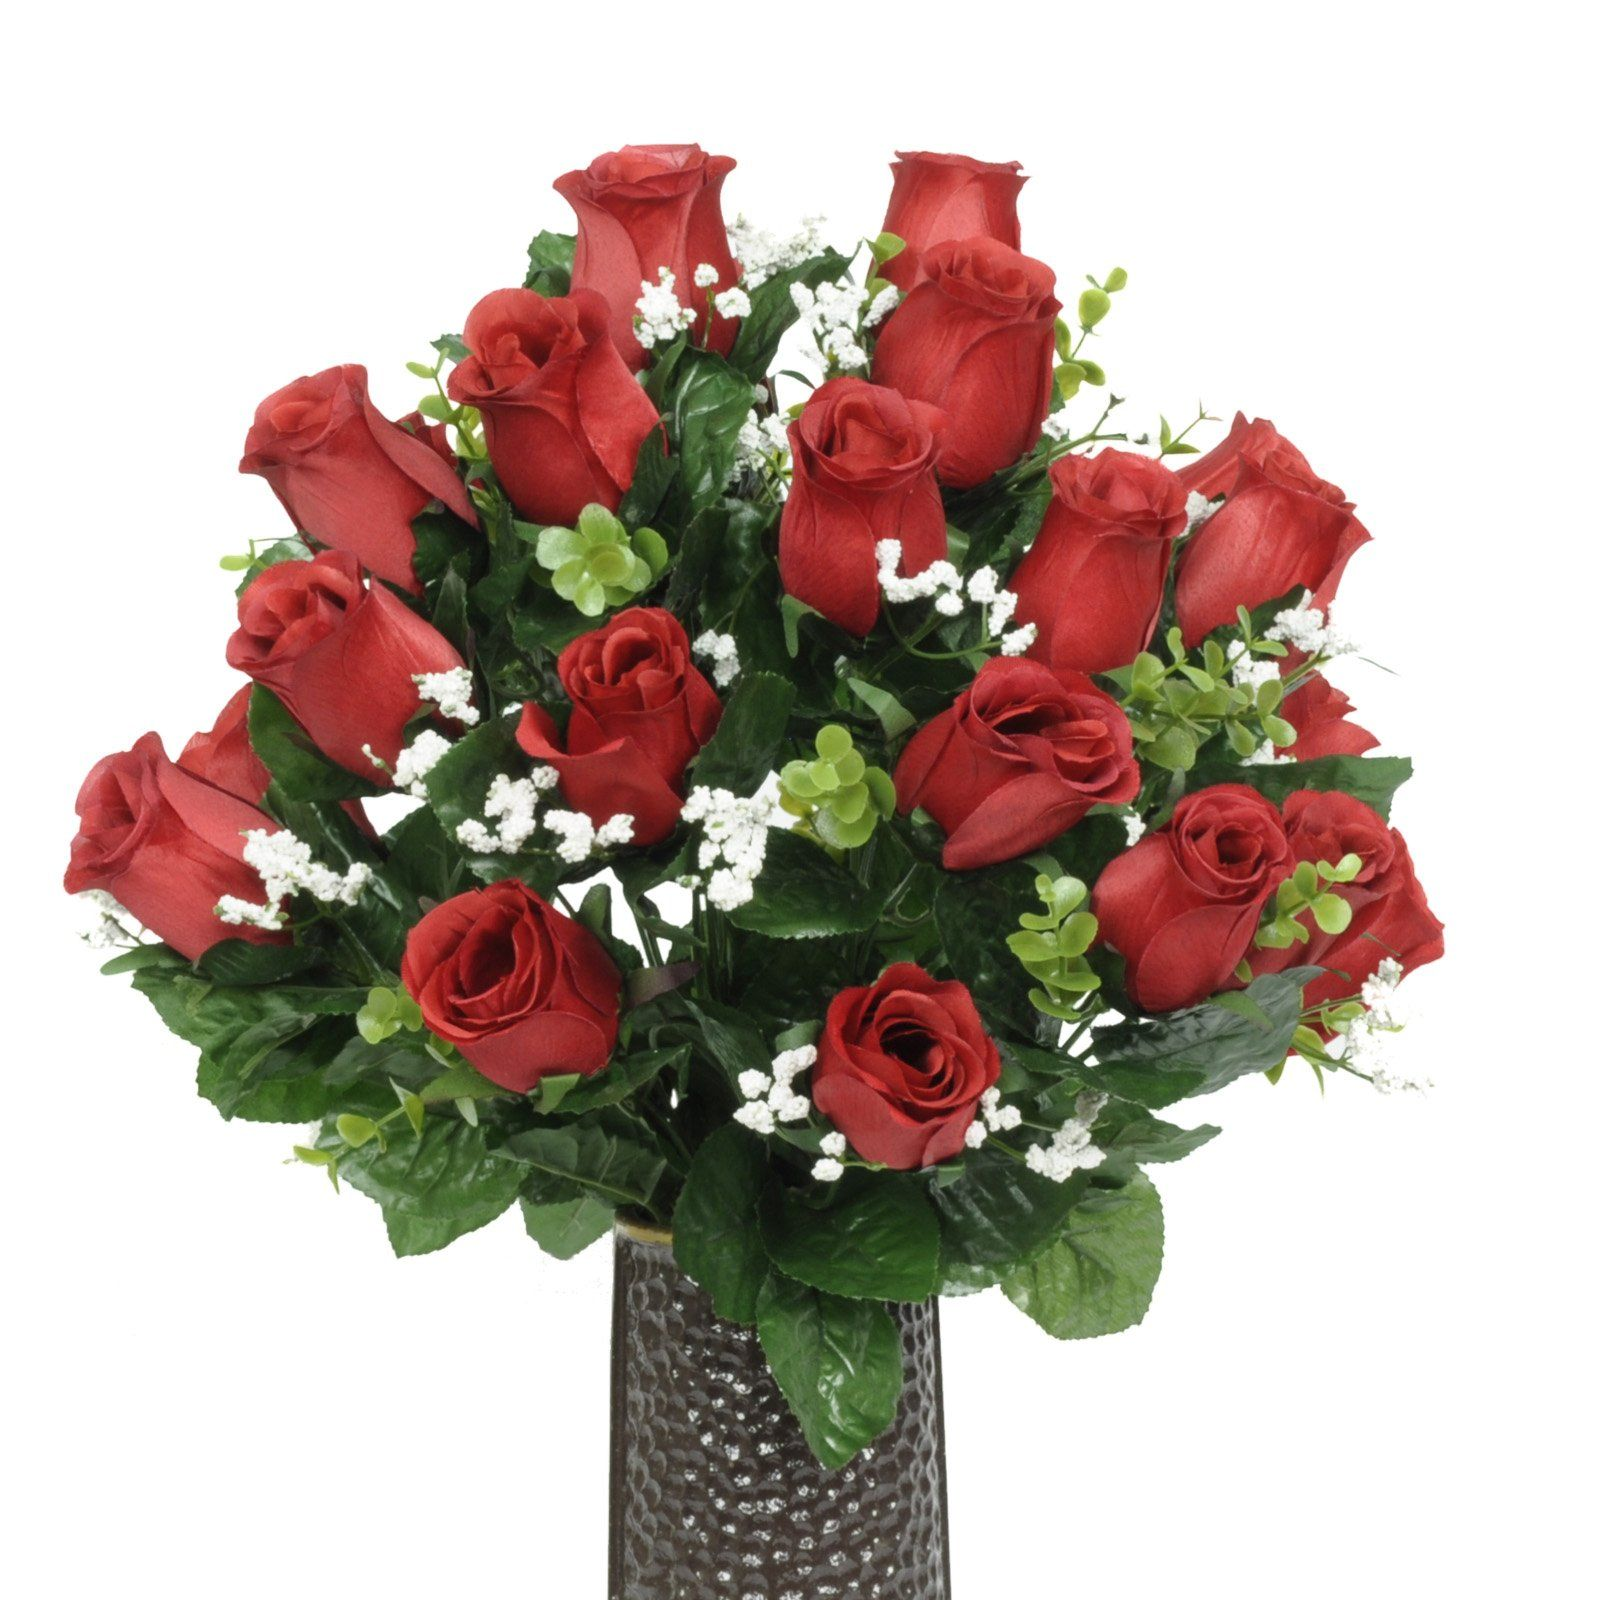 Red Rose Silk Flower Bouquet With Stay In The Vase Design Flower